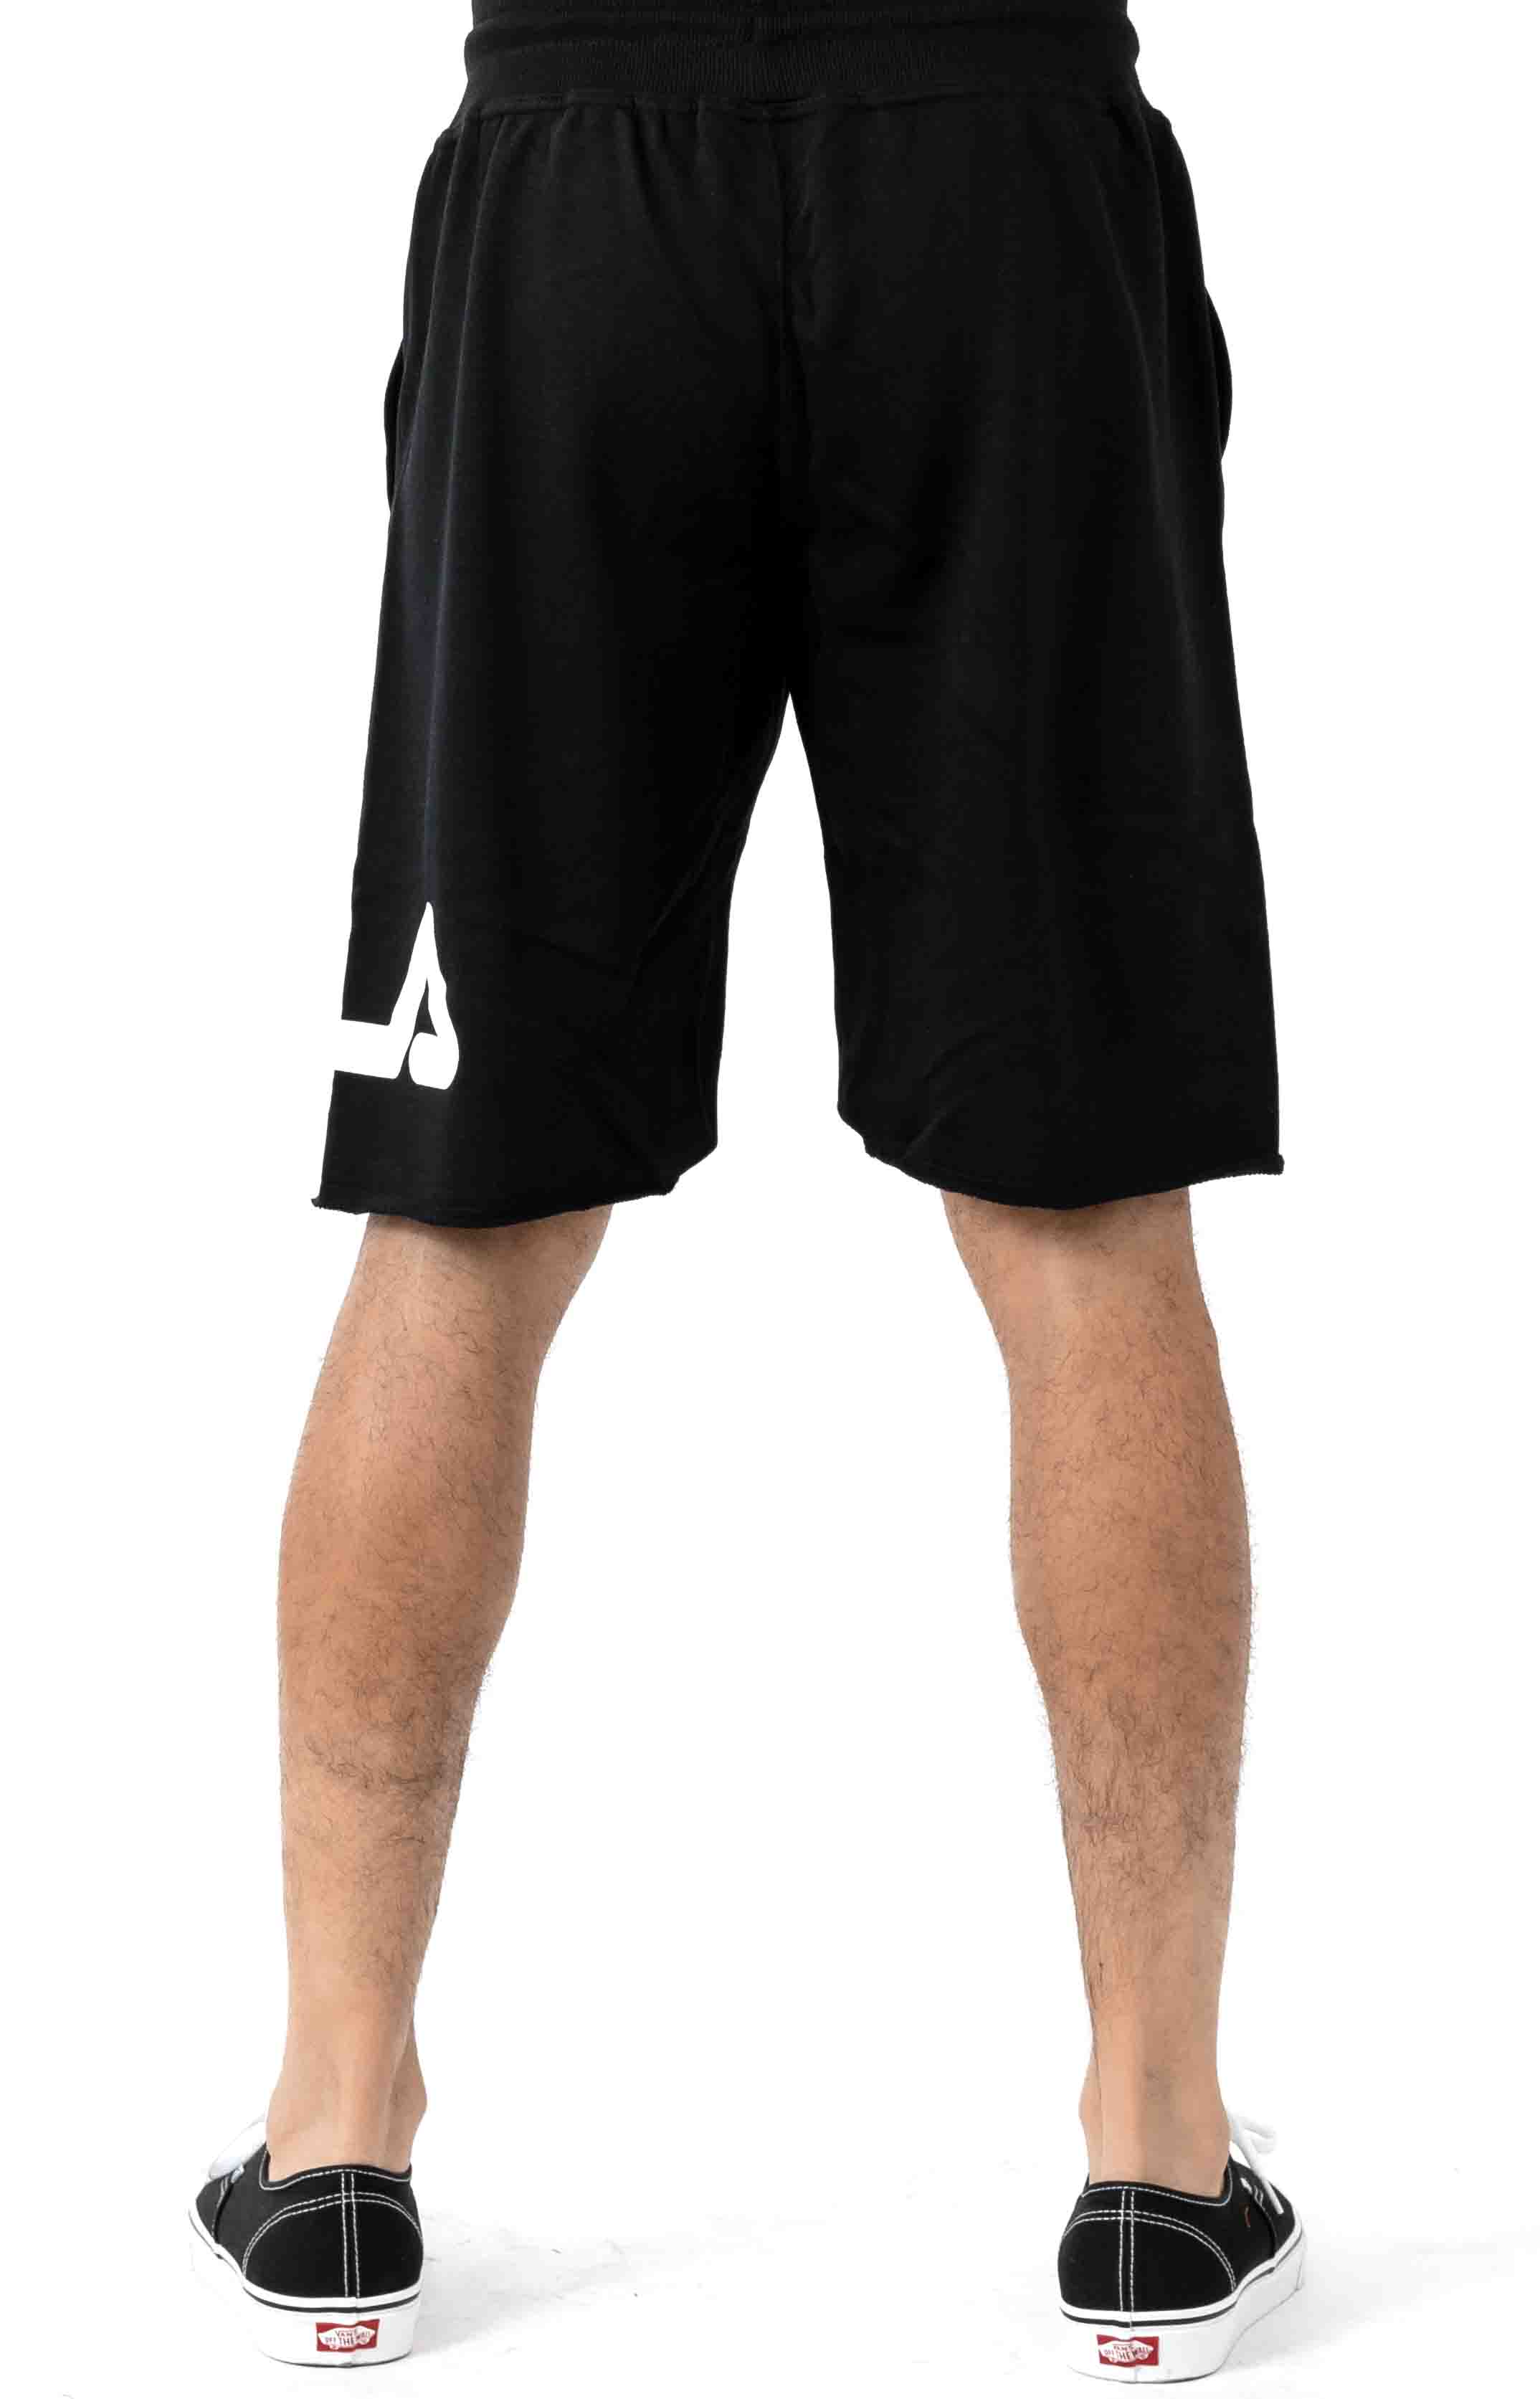 George Shorts - Black 3